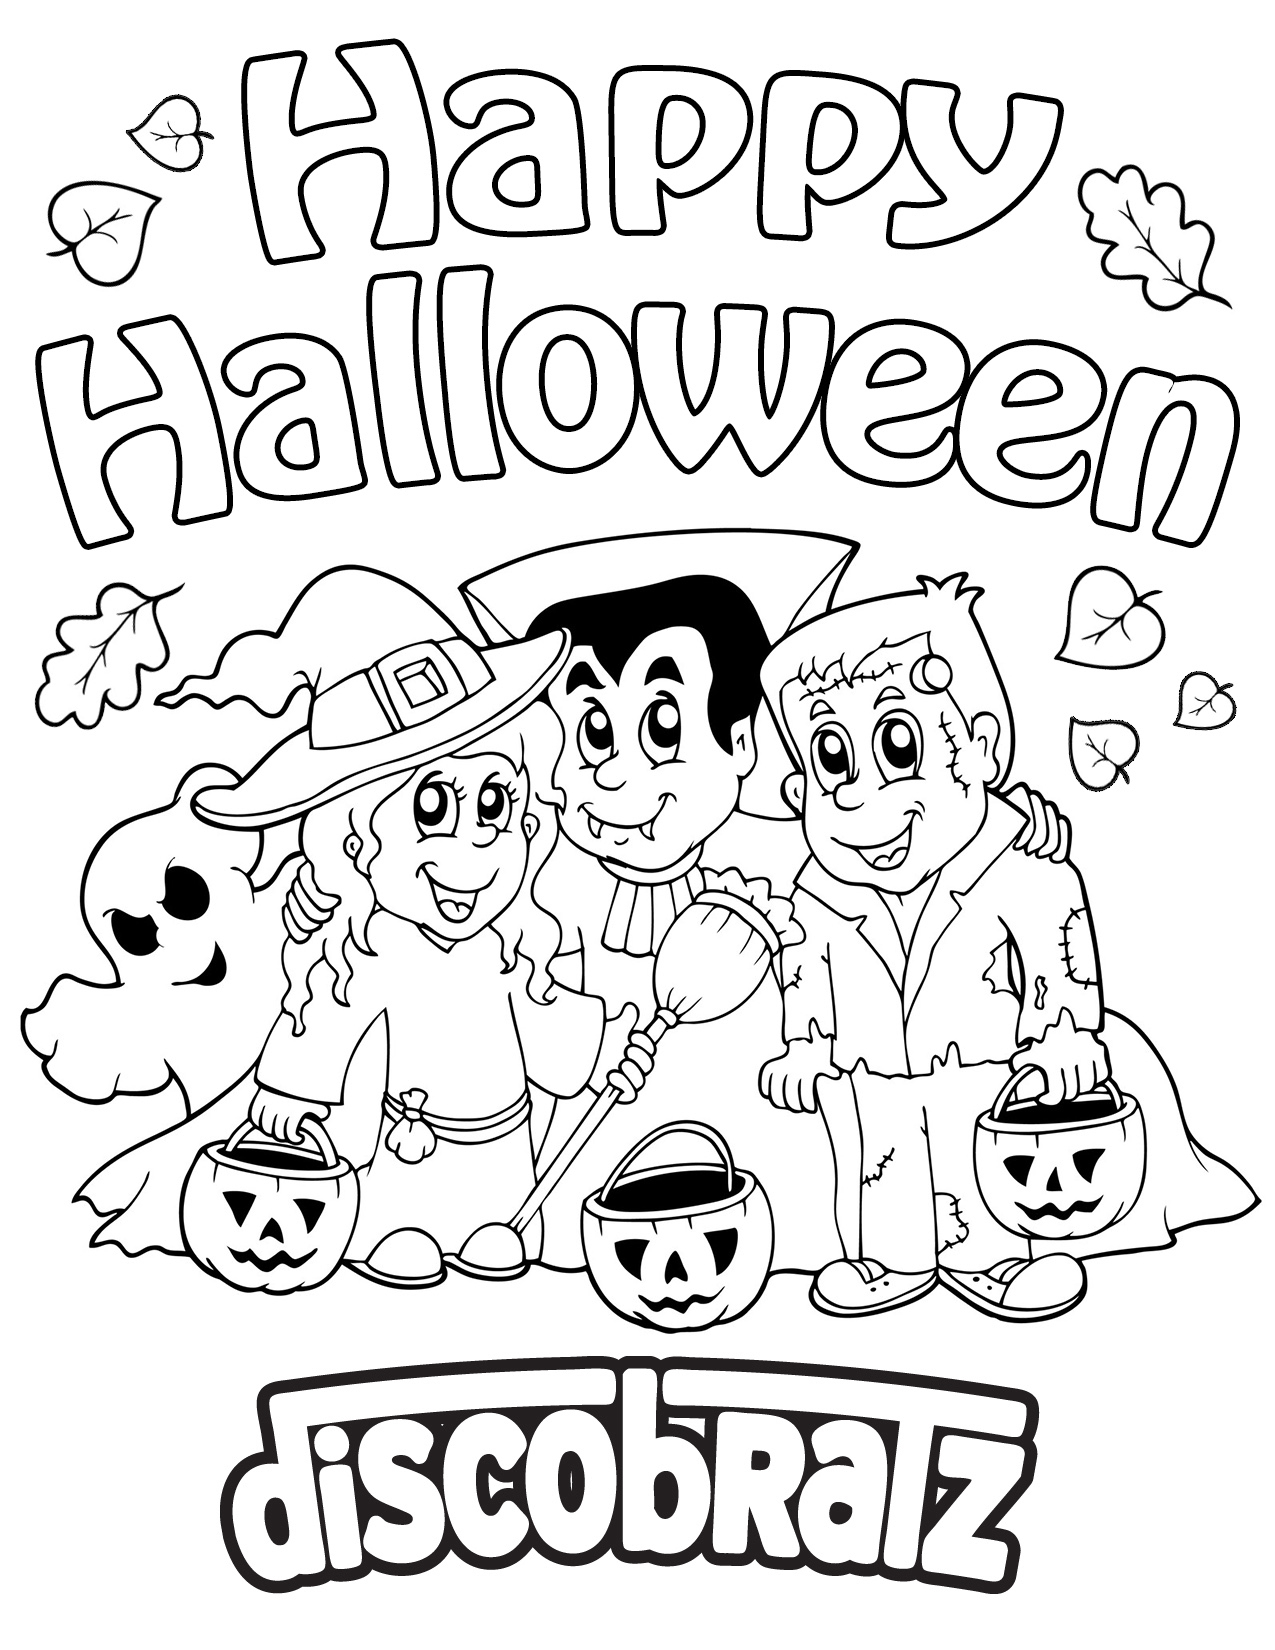 Boo! Get In Halloween Spirit With A New Coloring Page From avec Trick Or Treat Coloring Book: Trick Or